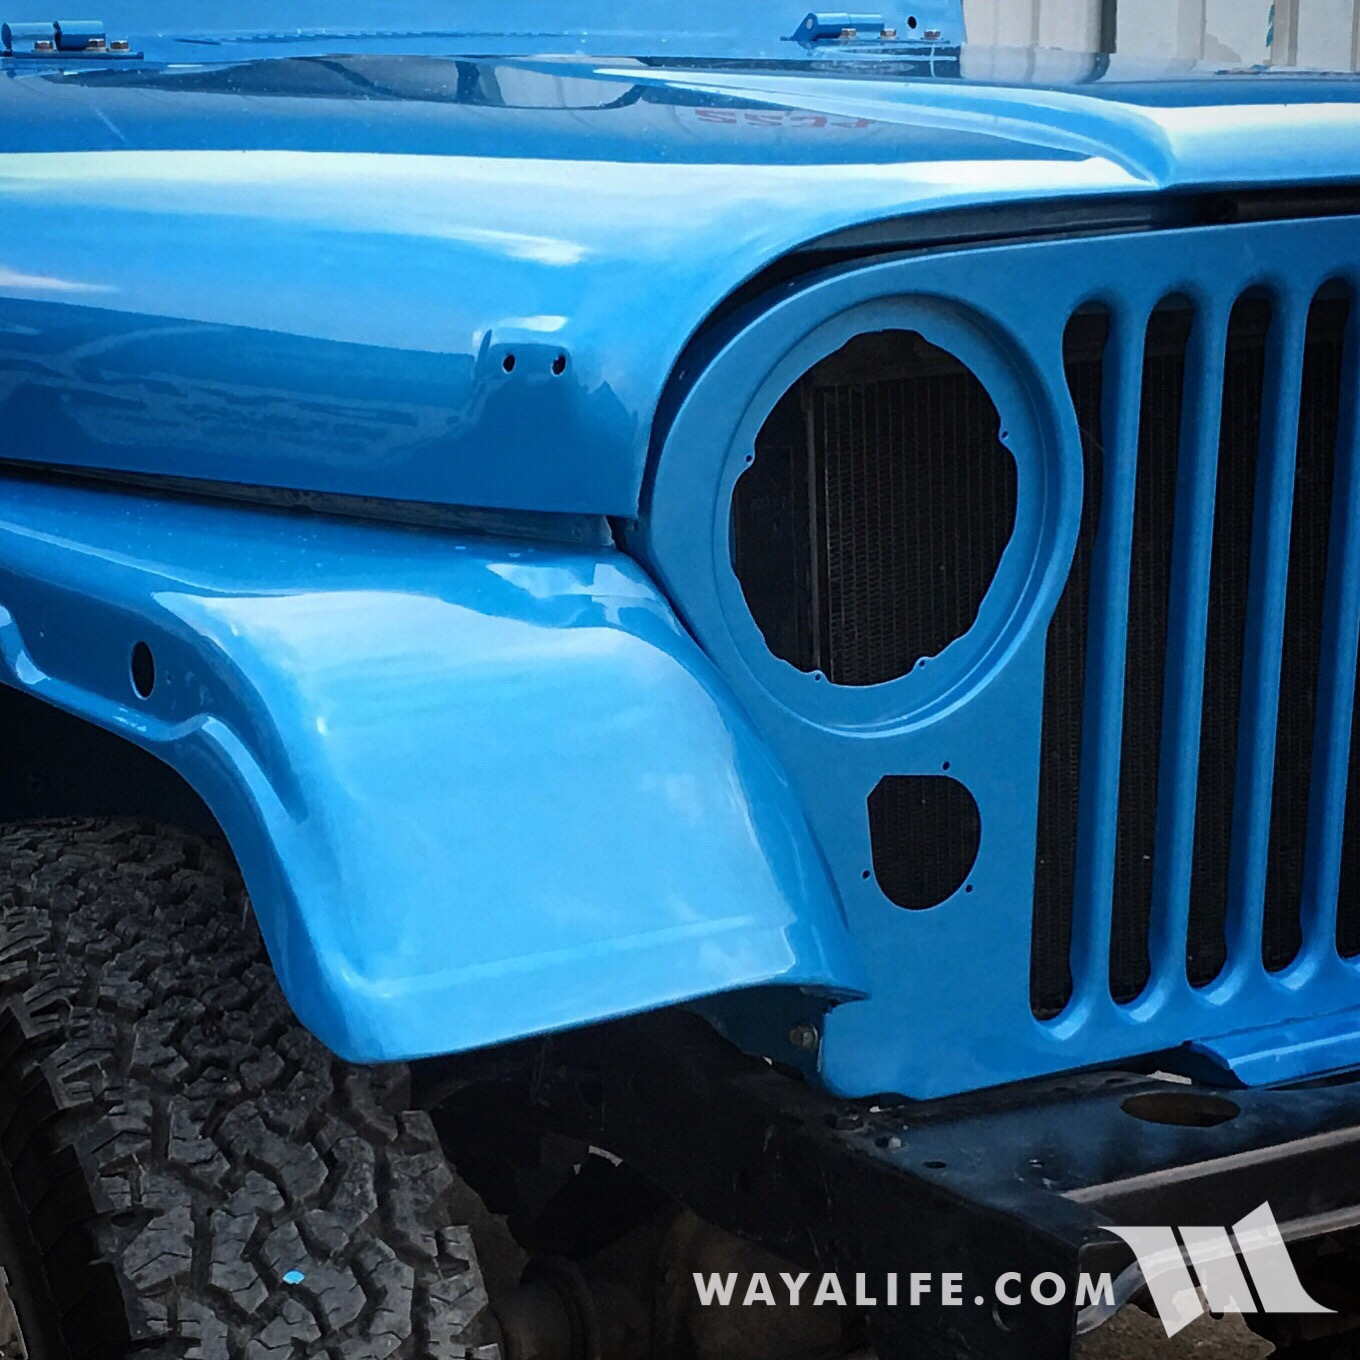 CJ5 Renegade painted Jetset Blue Metallic